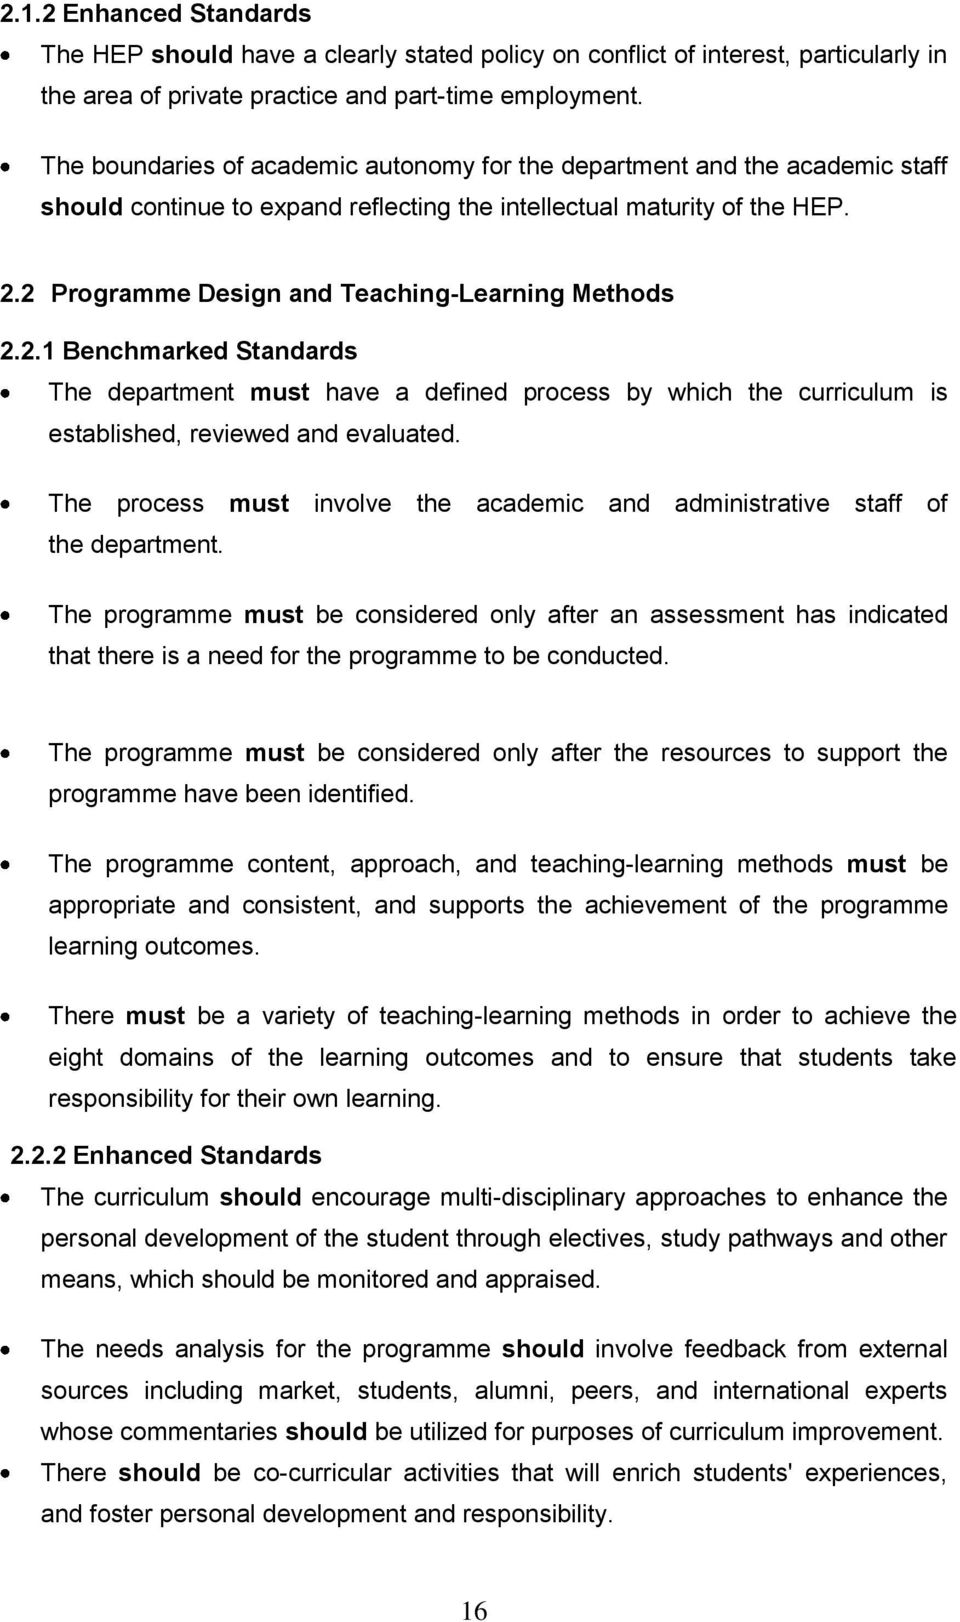 2 Prgramme Design and Teaching-Learning Methds 2.2.1 Benchmarked Standards The department must have a defined prcess by which the curriculum is established, reviewed and evaluated.